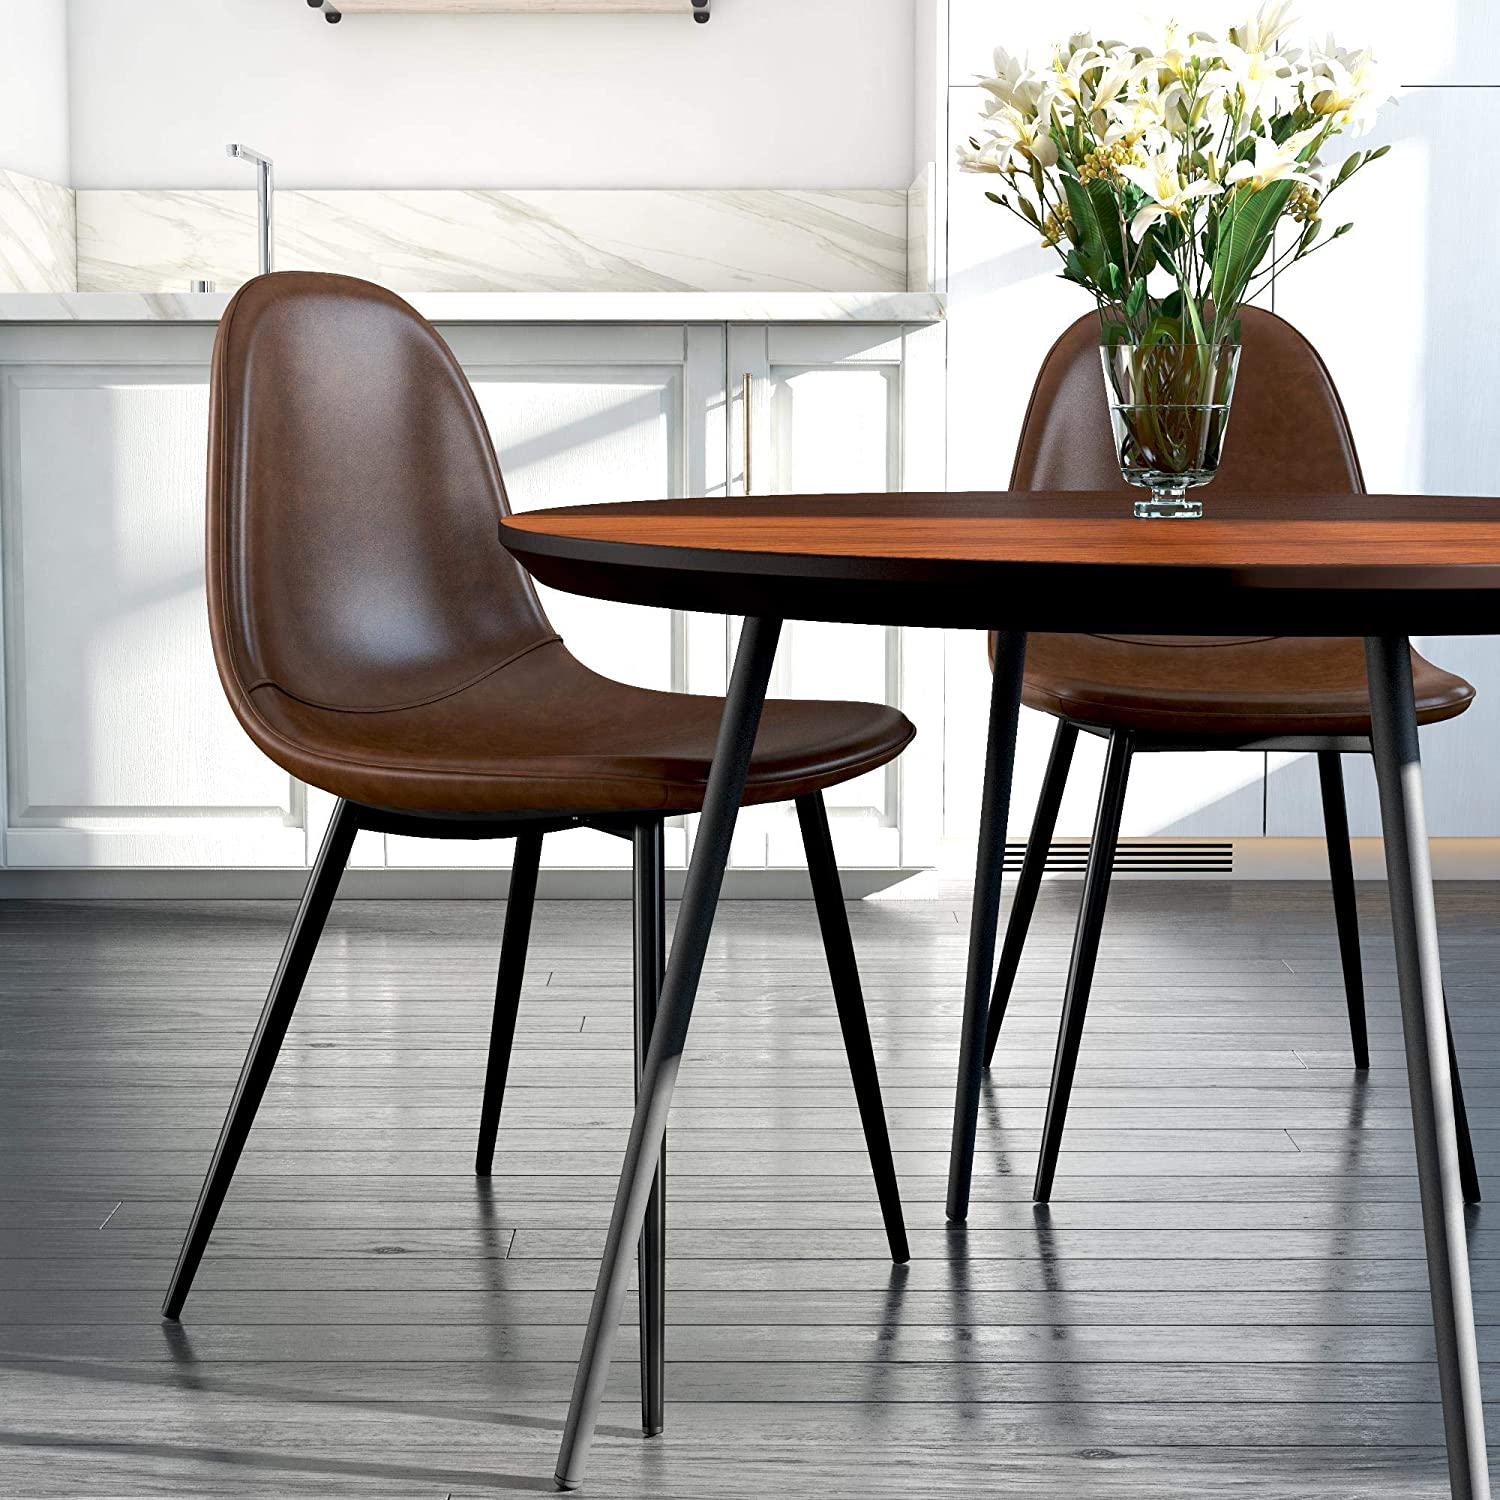 Best for Forms: DHP Casi Upholstered Dining Chair.